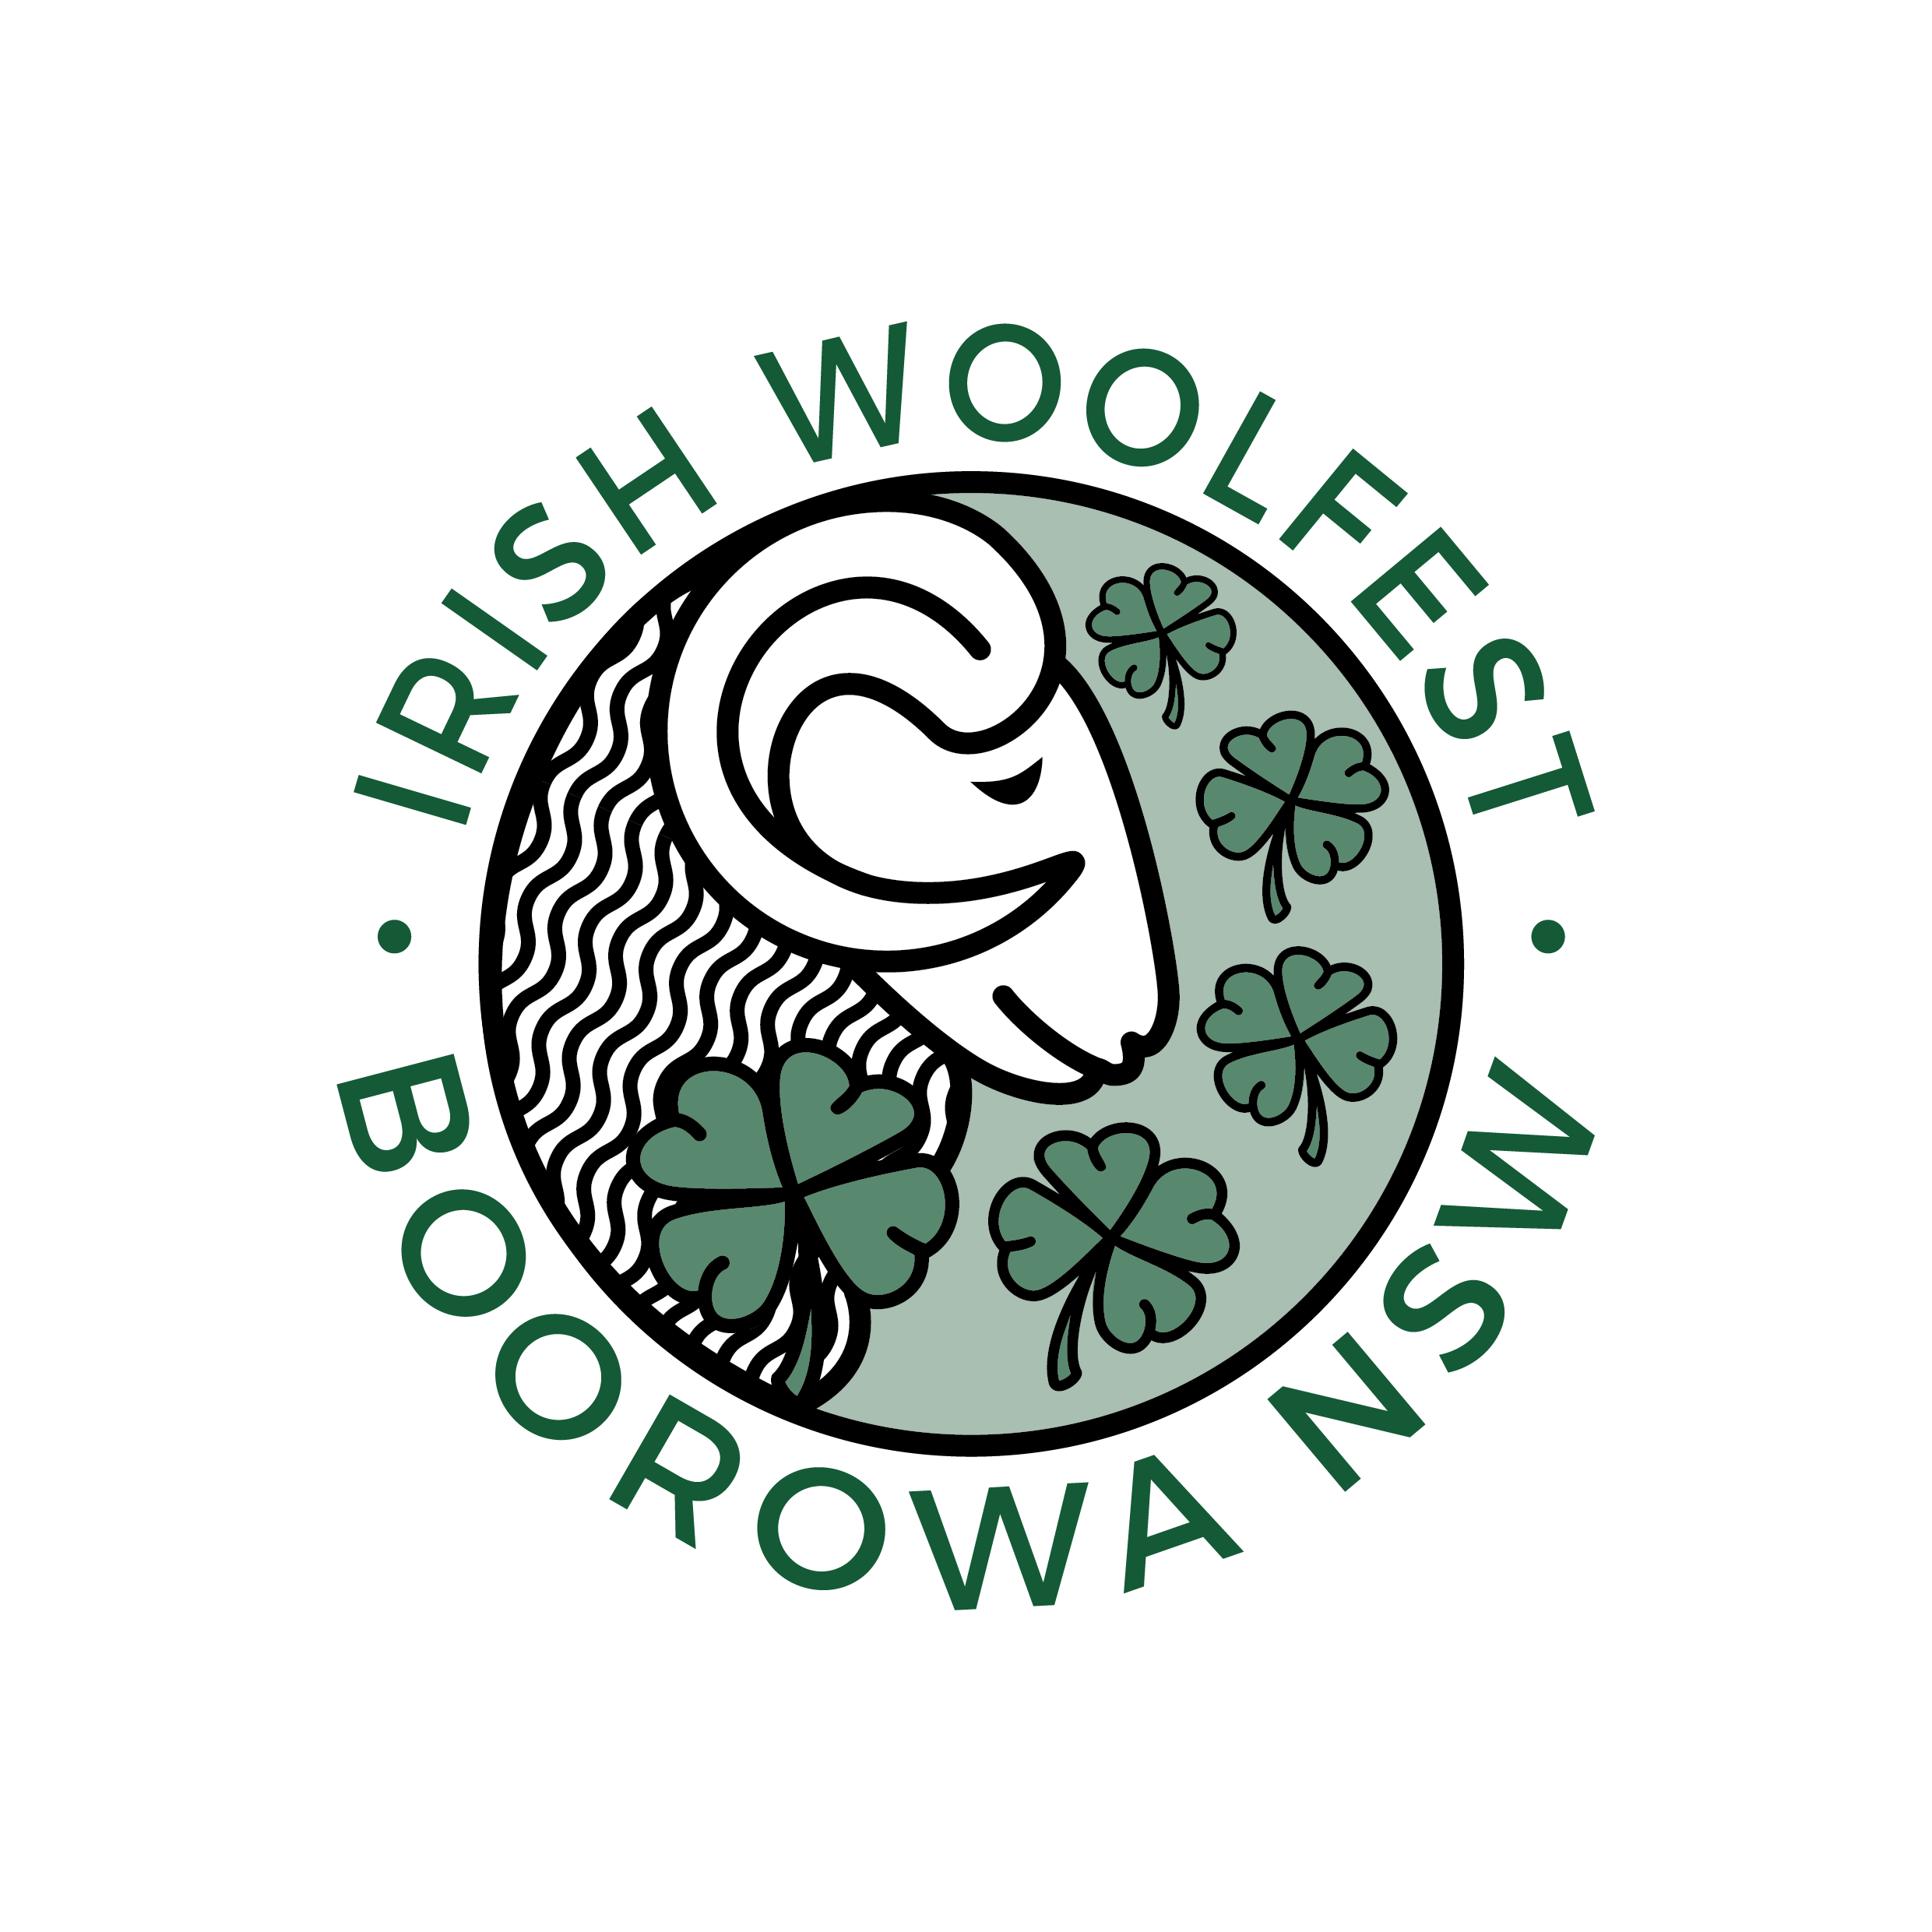 Boorowa Irish Woolfest